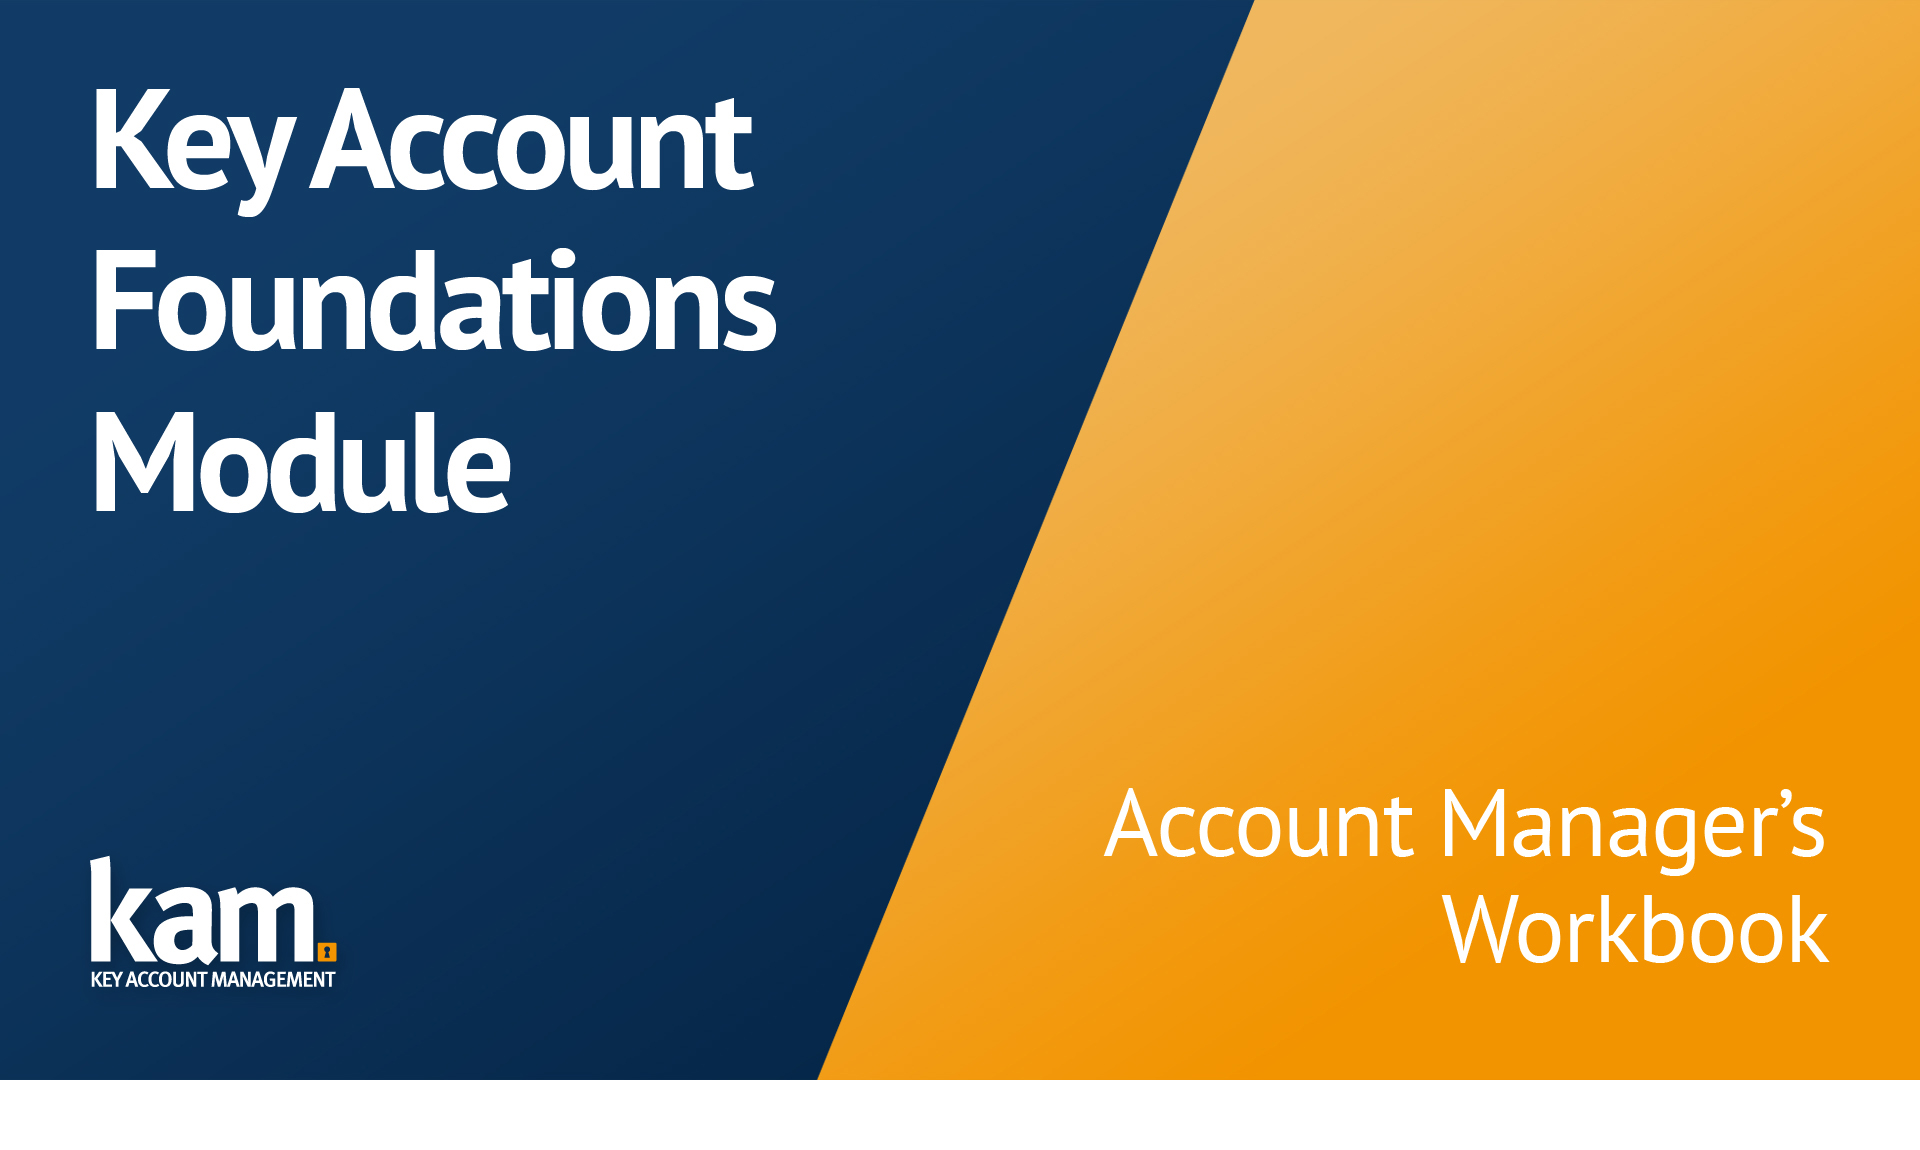 Key Account Foundations Module